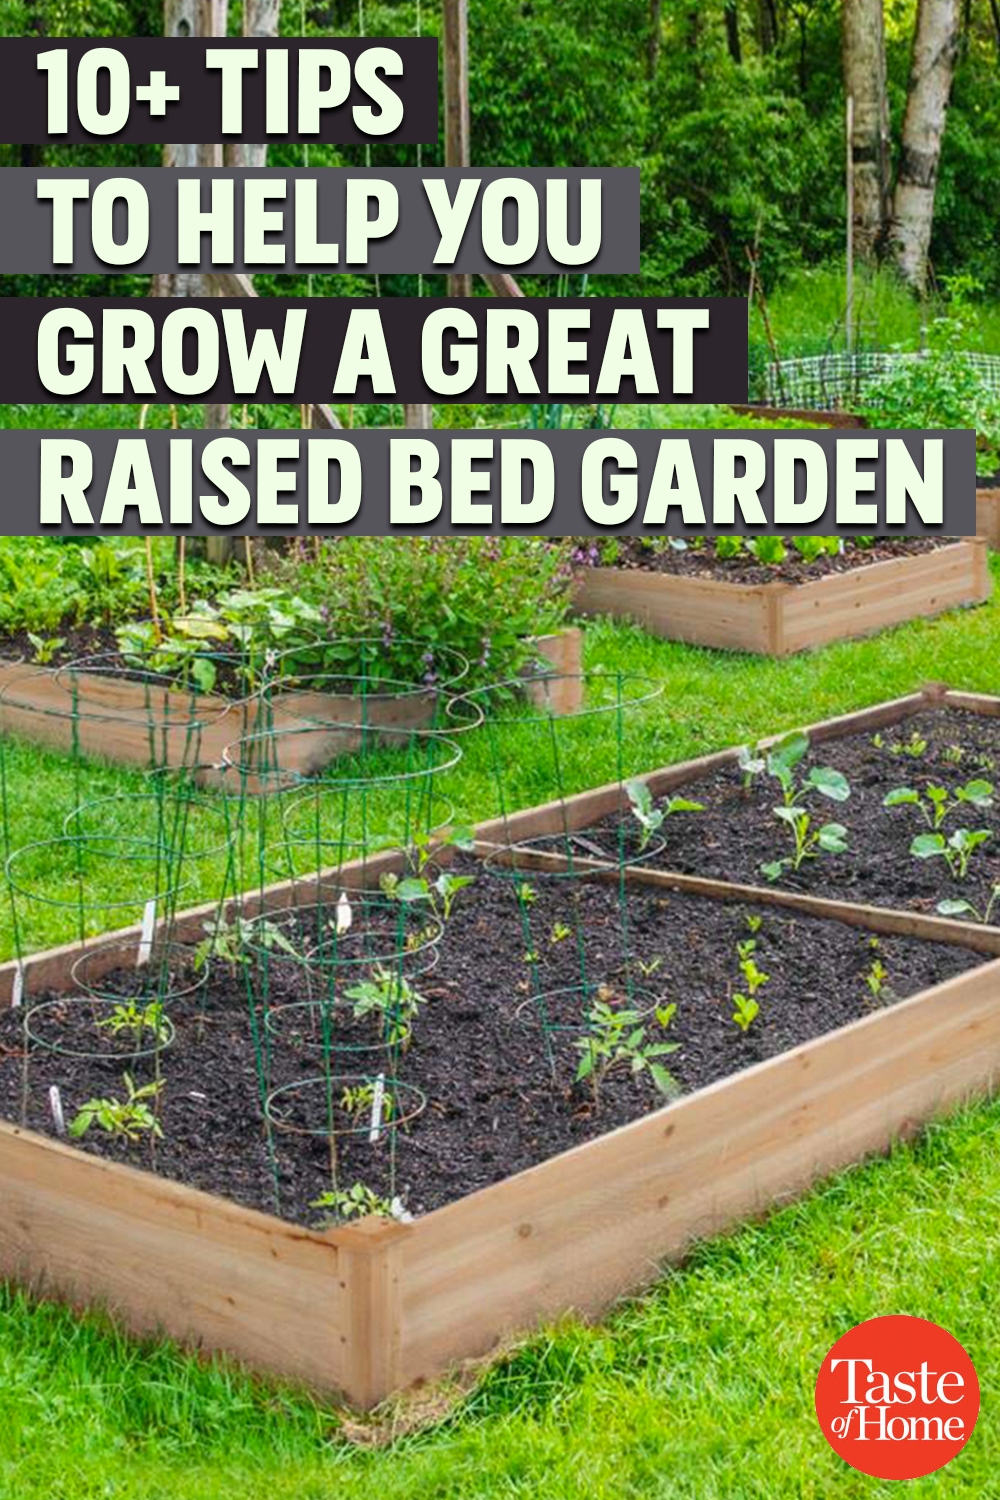 Tips And Tools To Help You Grow A Great Raised Bed Garden